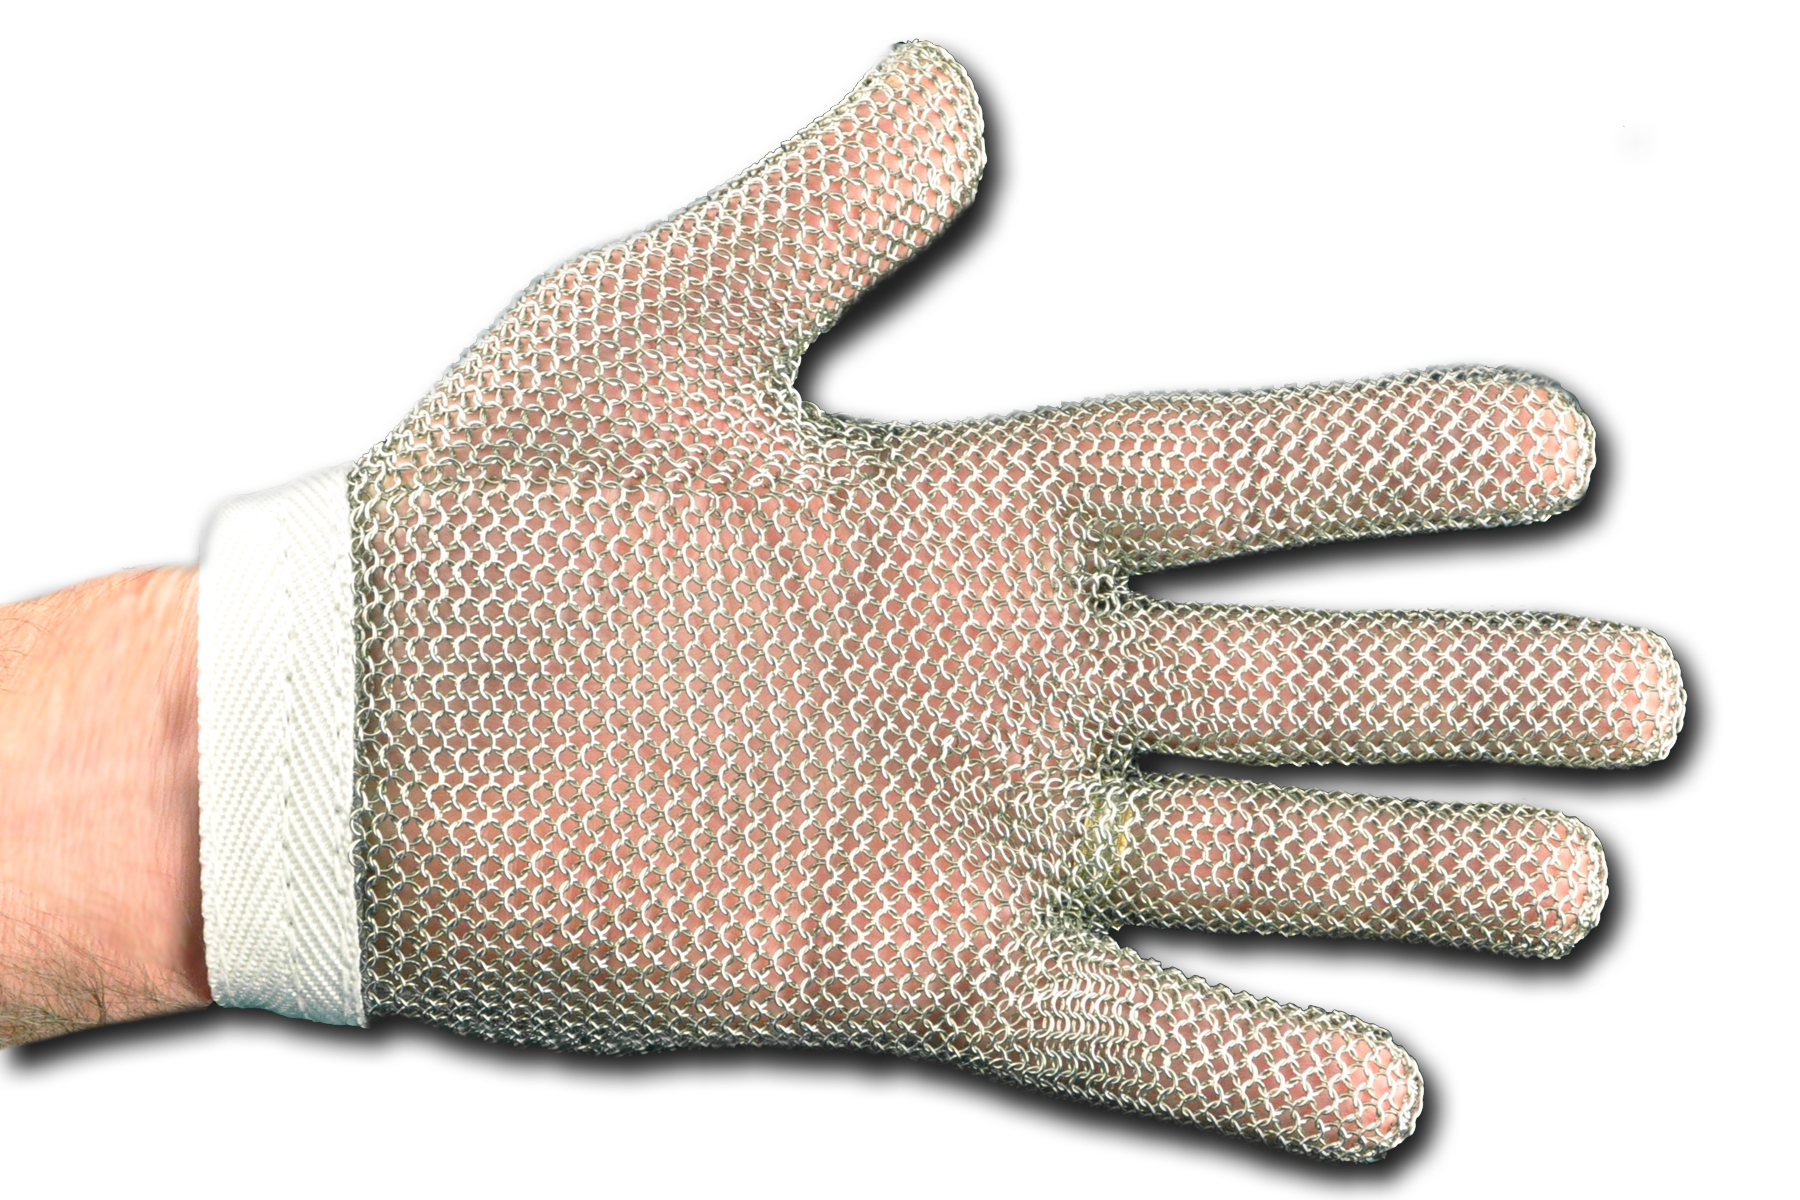 Dexter Russell 82143 protective gloves